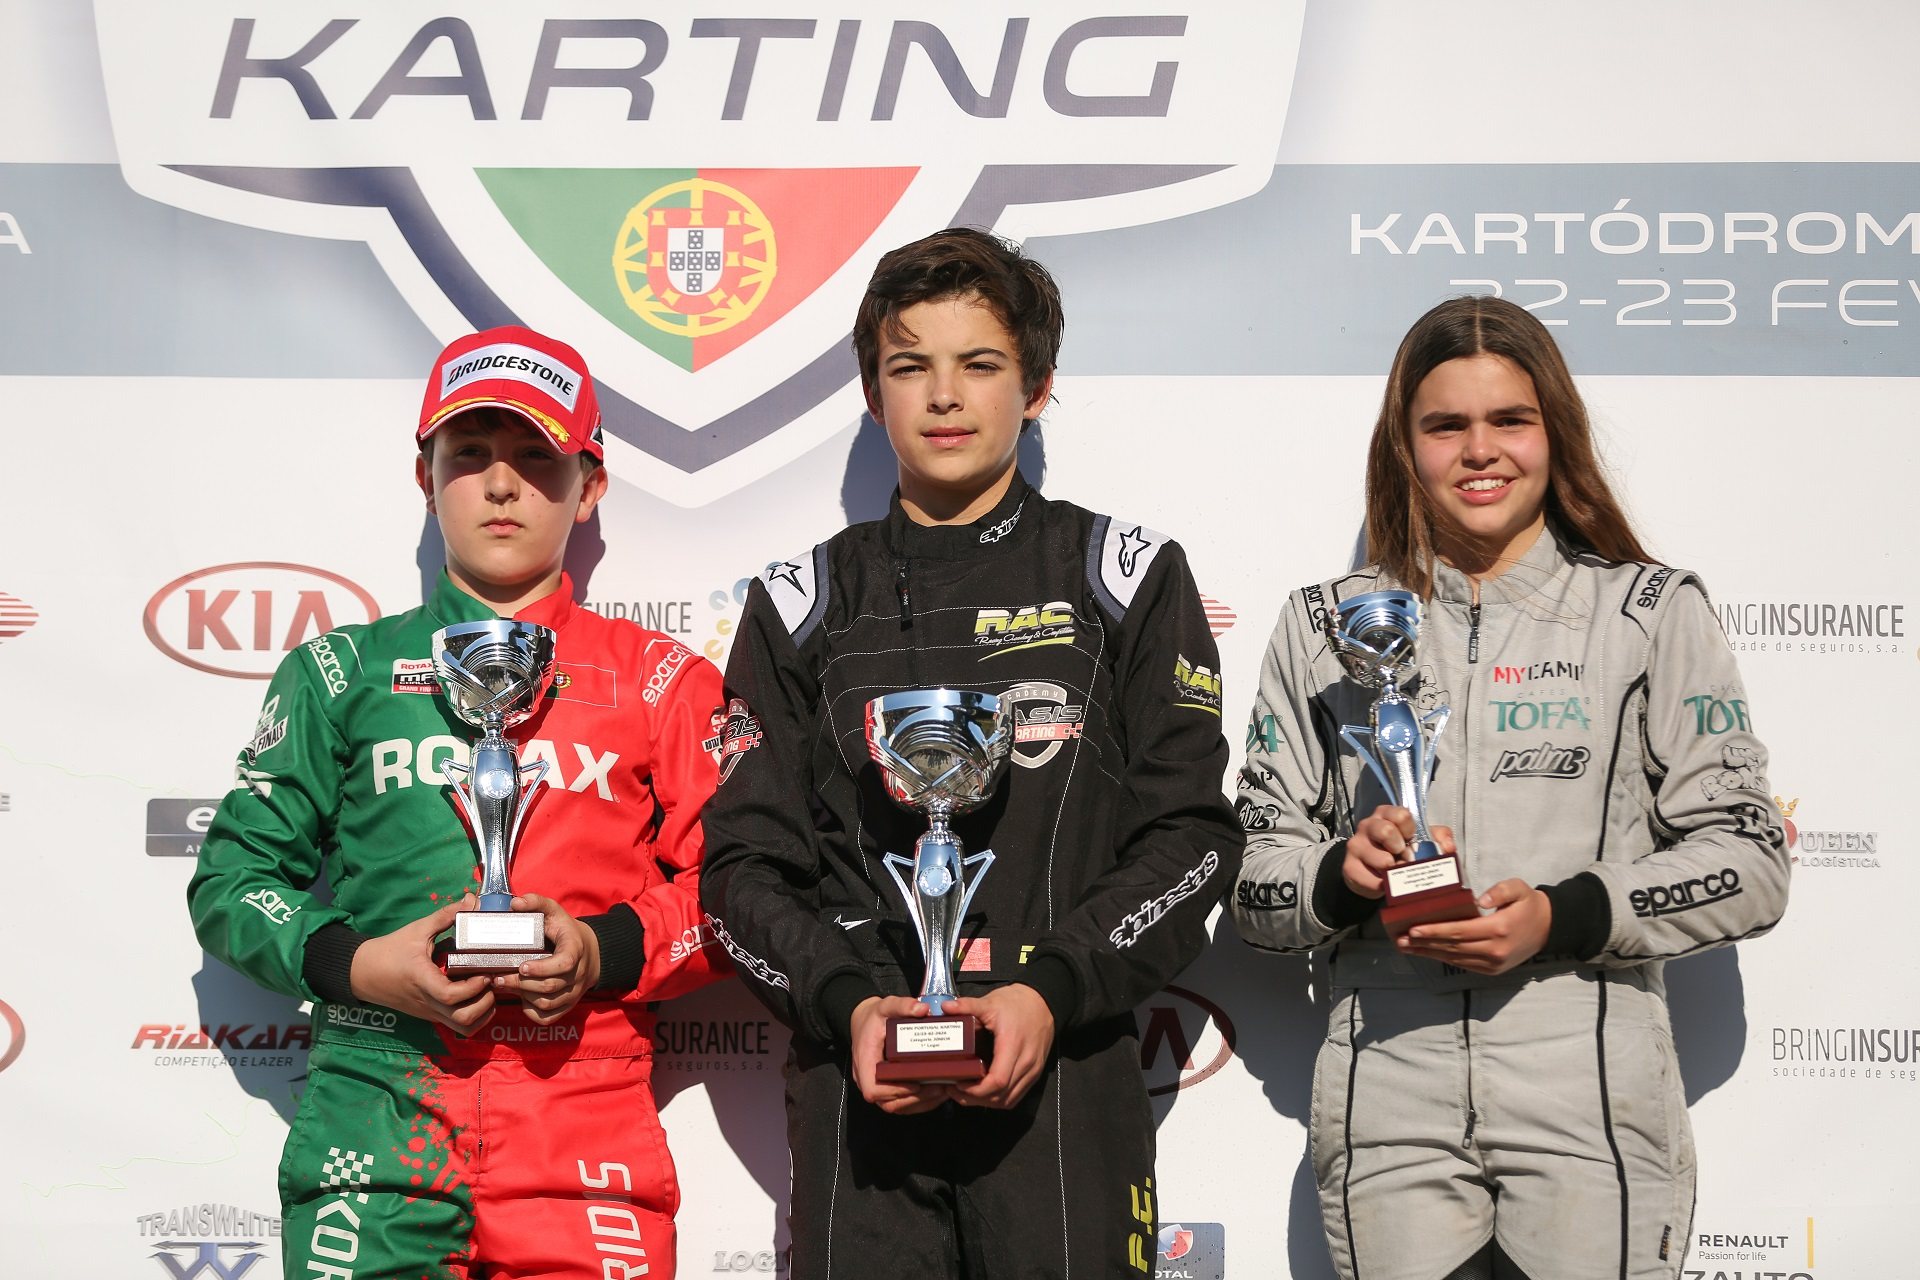 Duarte Pinto Coelho triunfa no Open de Portugal de Karting na categoria Júnior